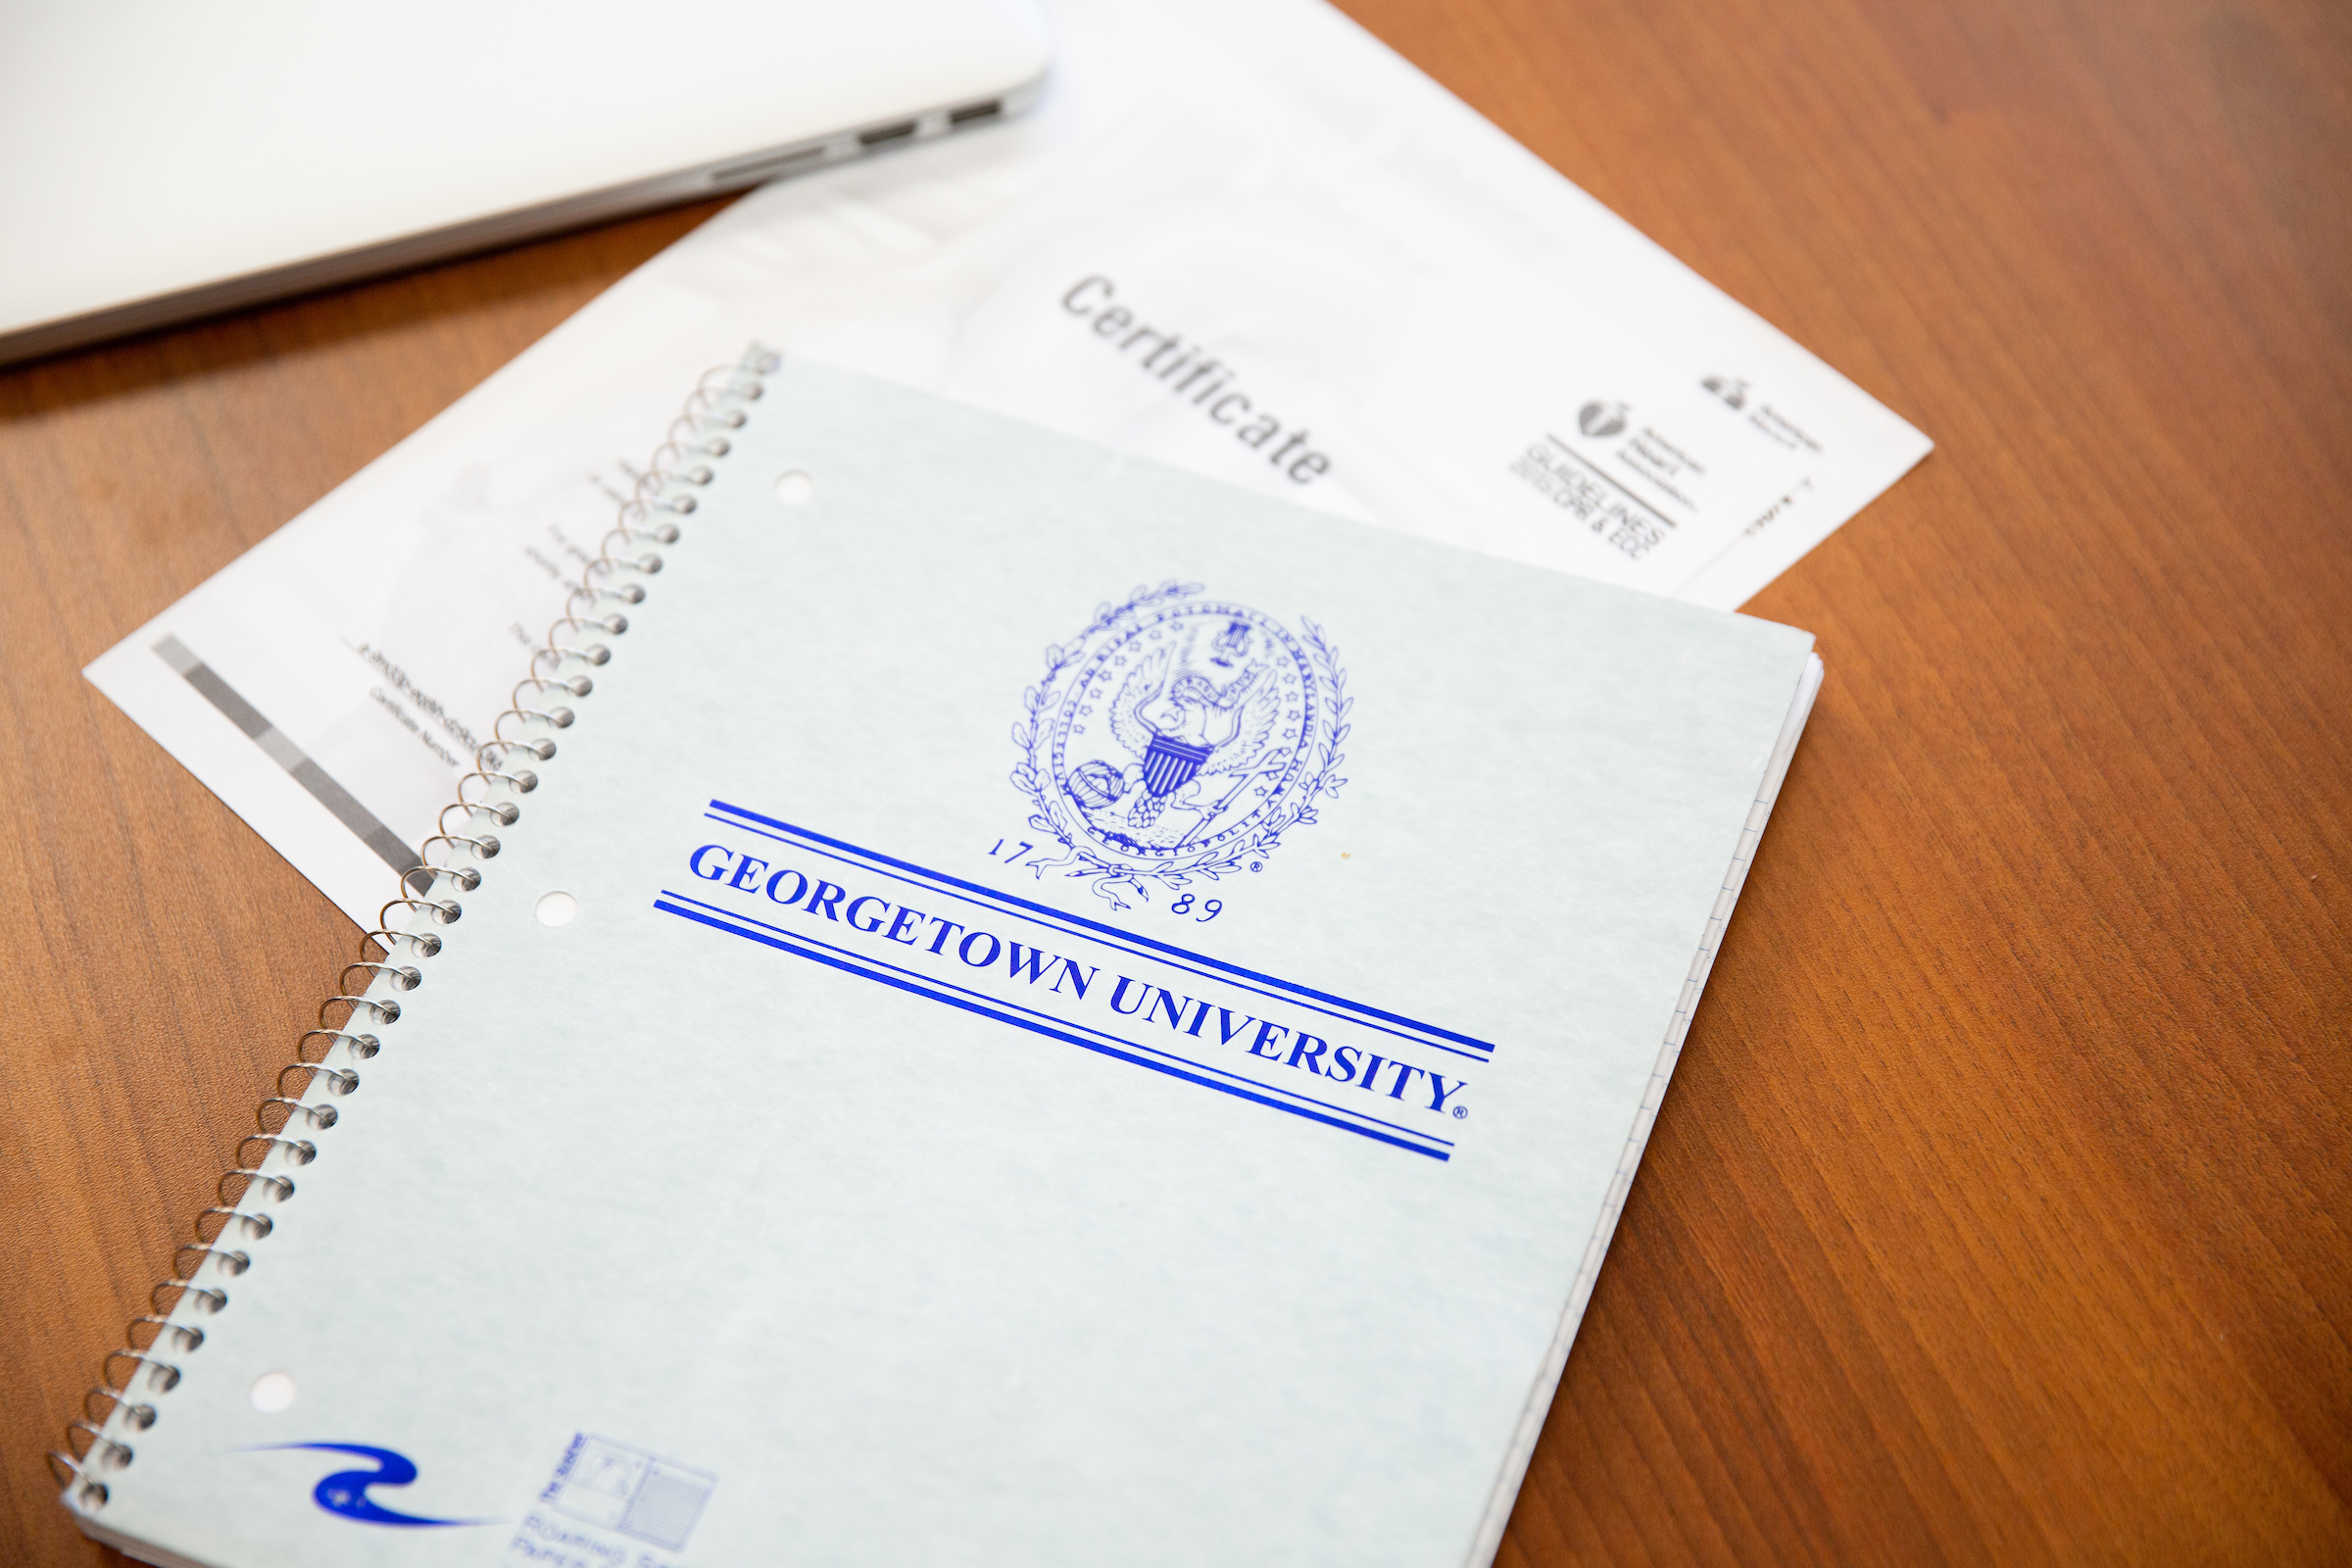 Spiral notebook with Georgetown University Seal on cover